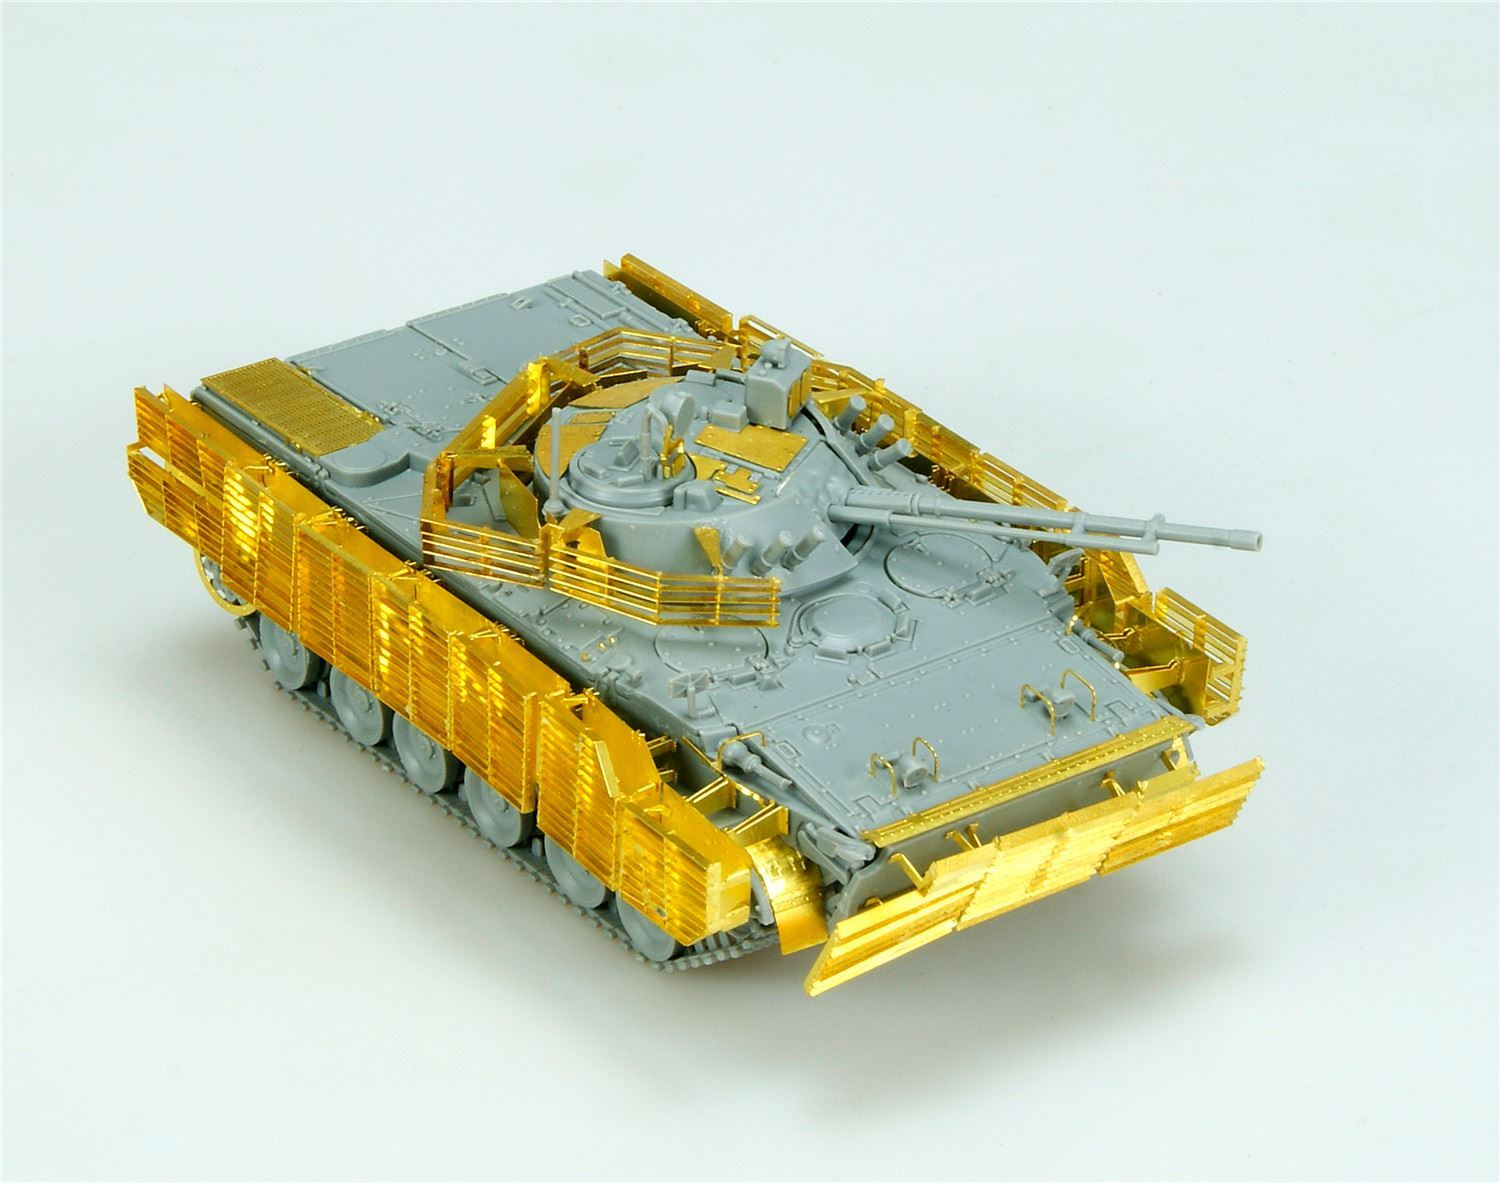 0002129_bmp3-infantry-fighting-vehicle-w